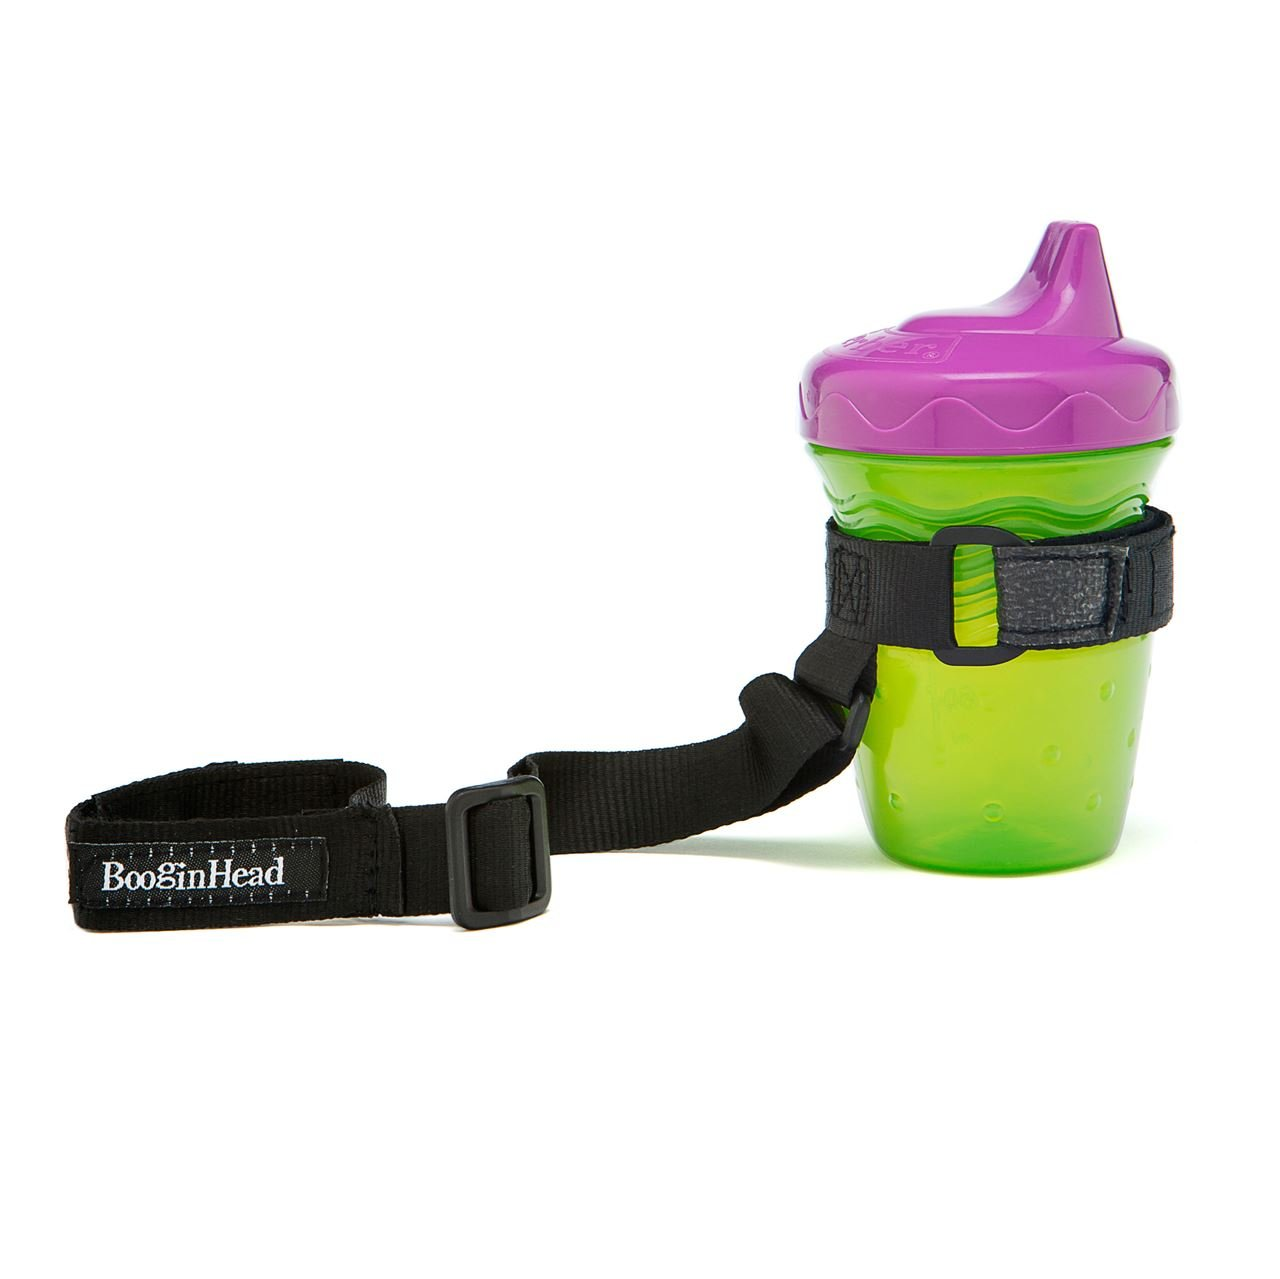 BooginHead BooginHead - SippiGrip Sippy Cup and Bottle Holder, High Chair and Car Seat Universal Attachment Strap - Black